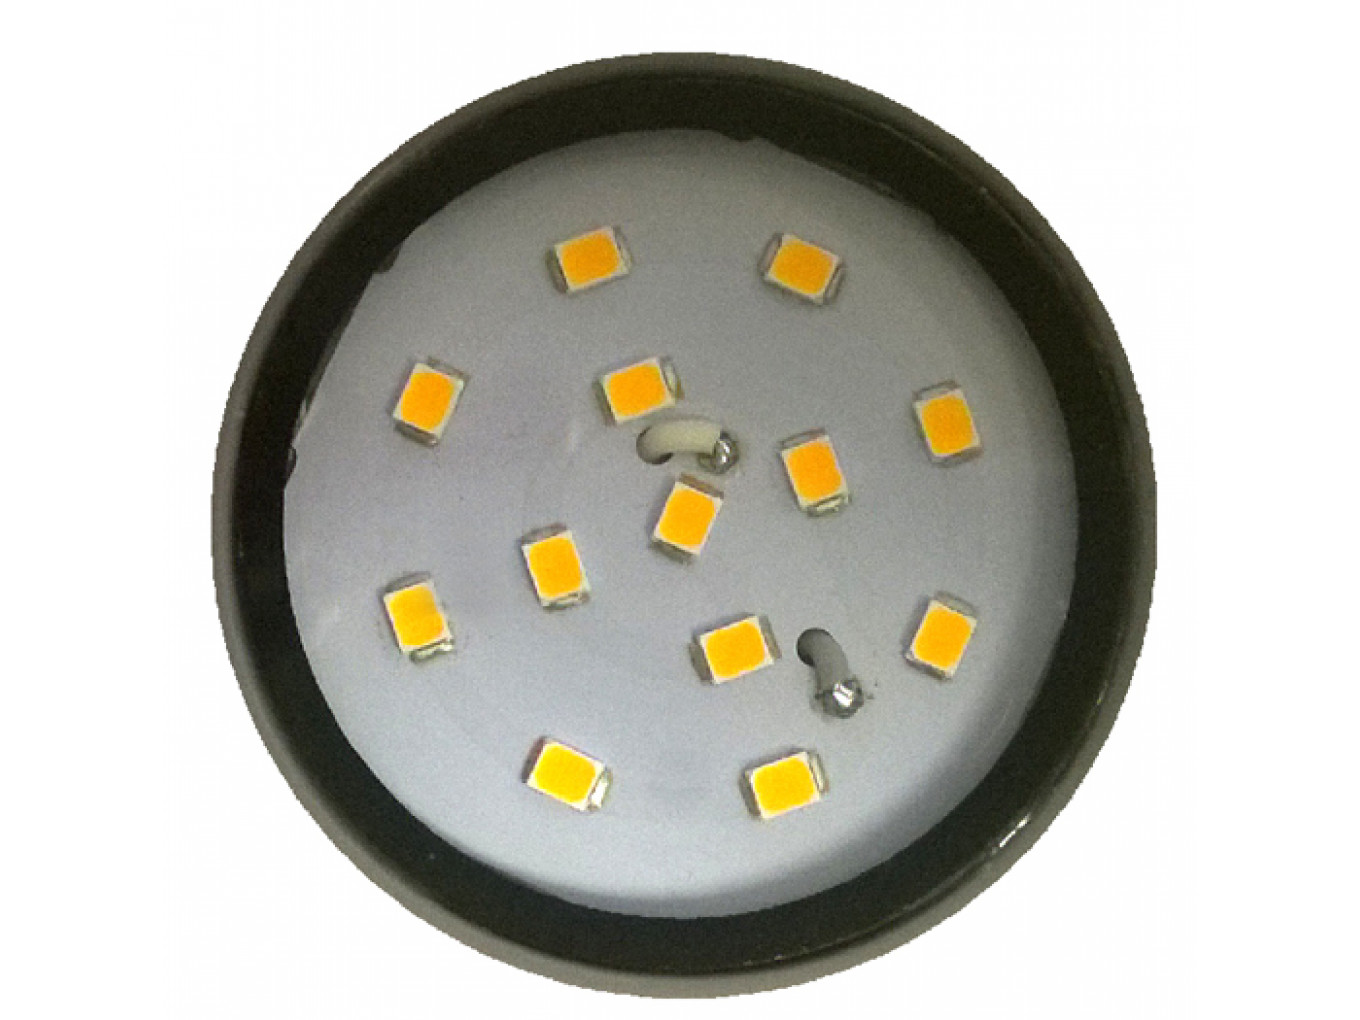 8620 3 5w G40 Smd Led Round Lamp 5410 5412 Replacement